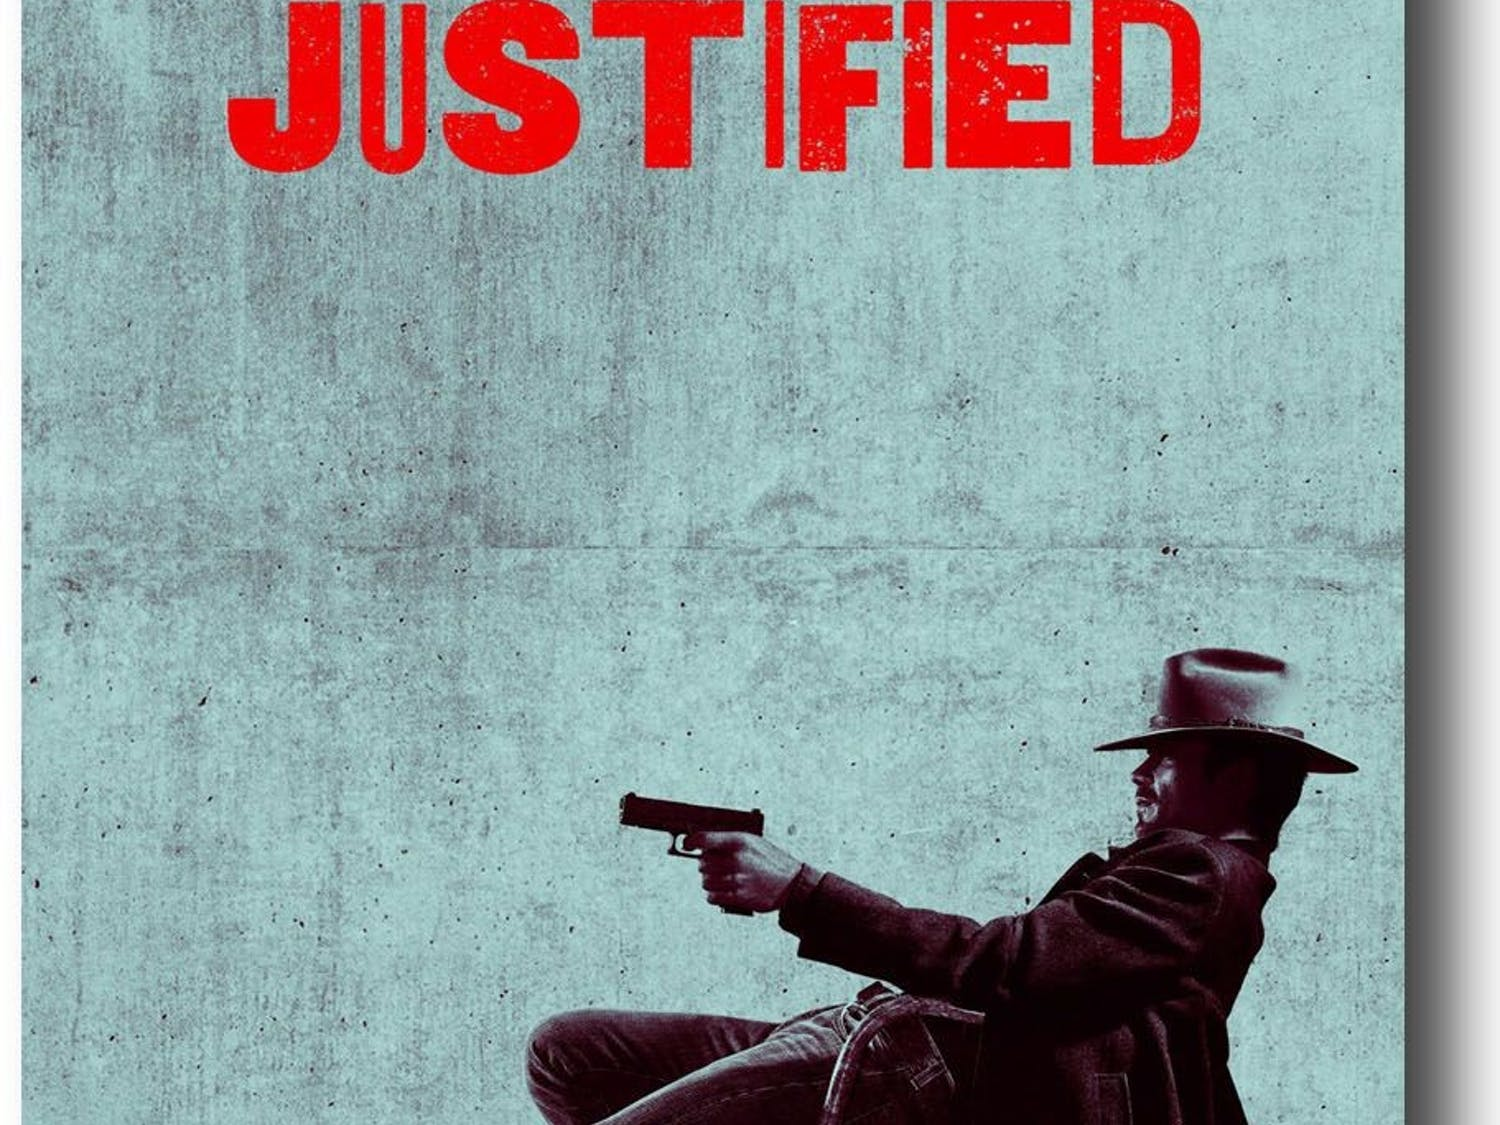 'Justified,' a series on FX, provides an interesting look into America's police culture and when police are and aren't justified.